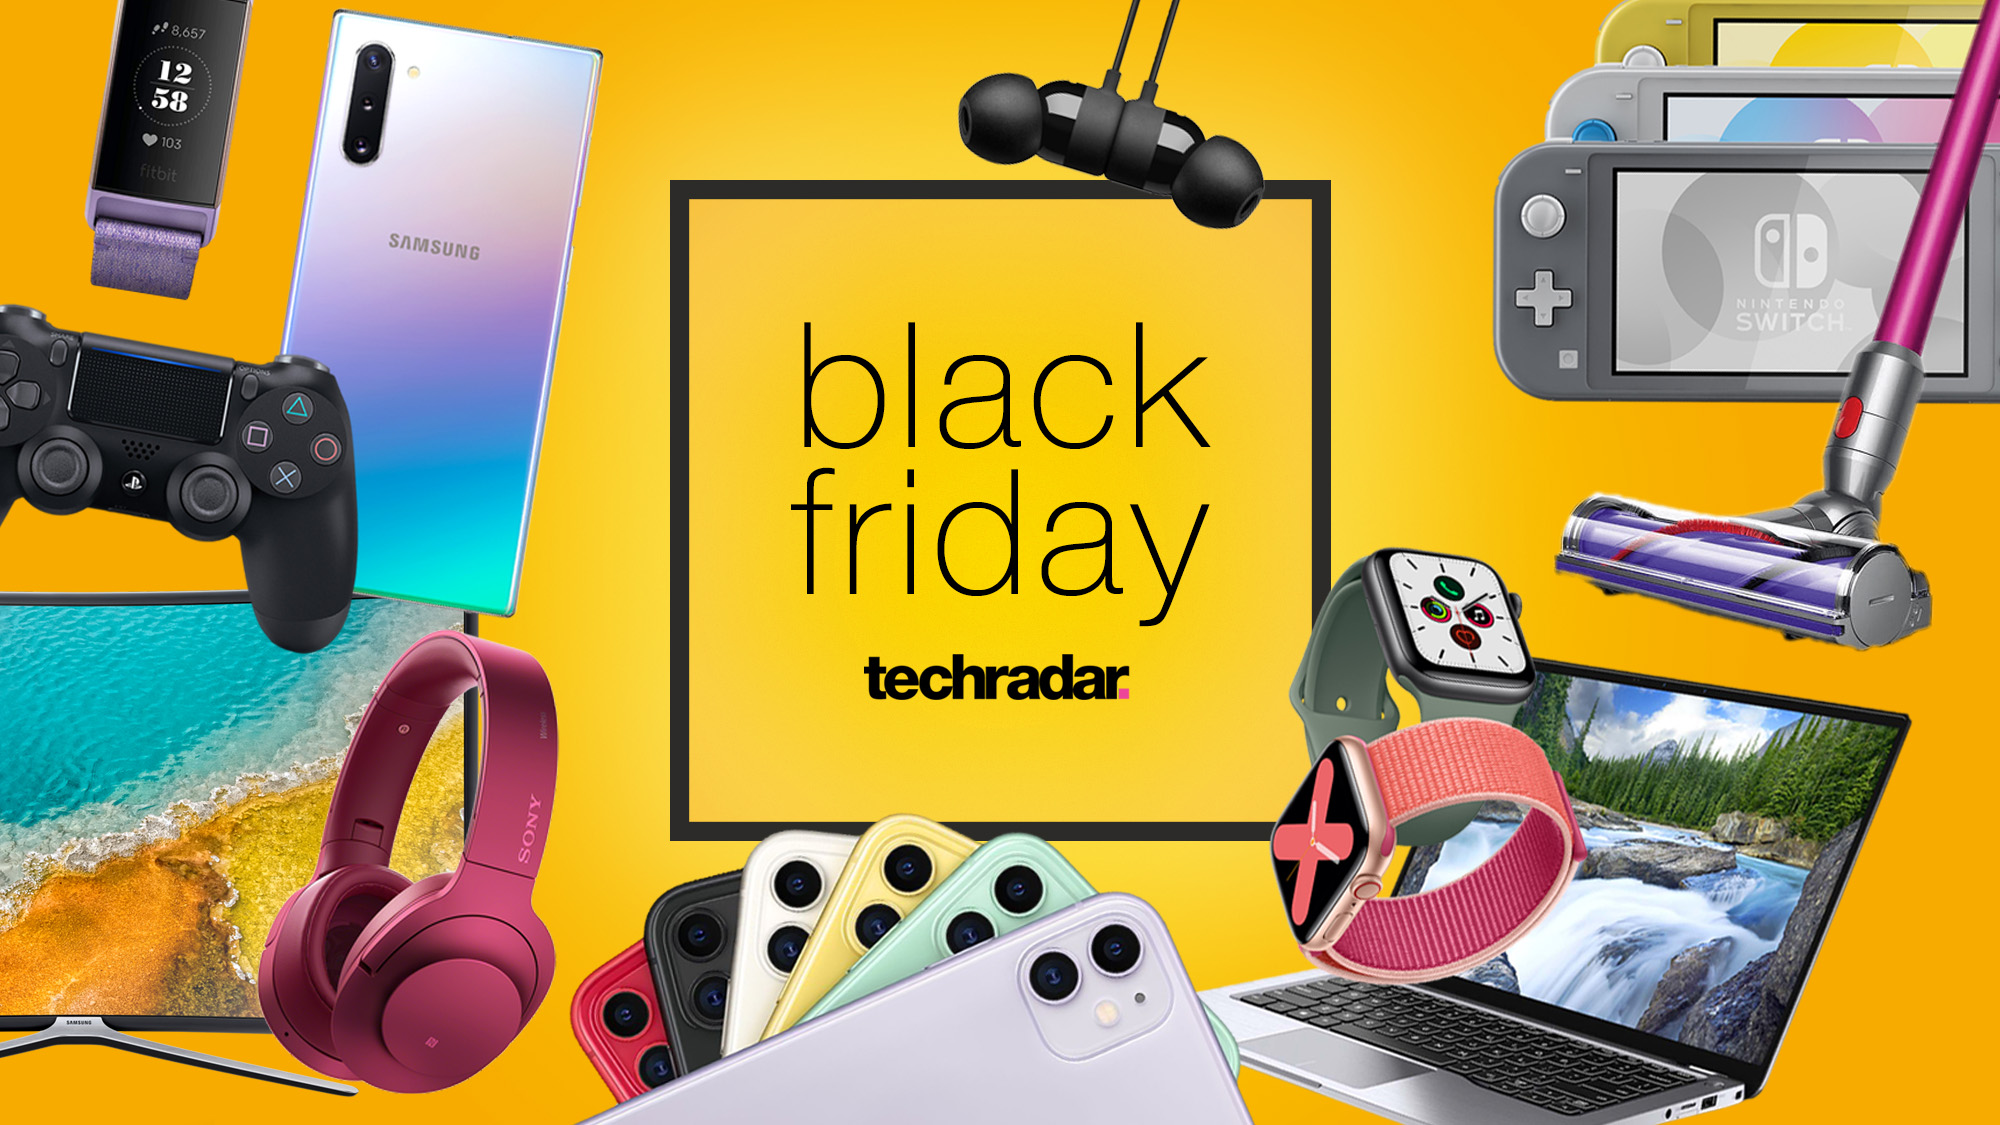 Best Laptop Deals Black Friday 2020.The Best Black Friday Deals 2019 Welcome To A Full Weekend